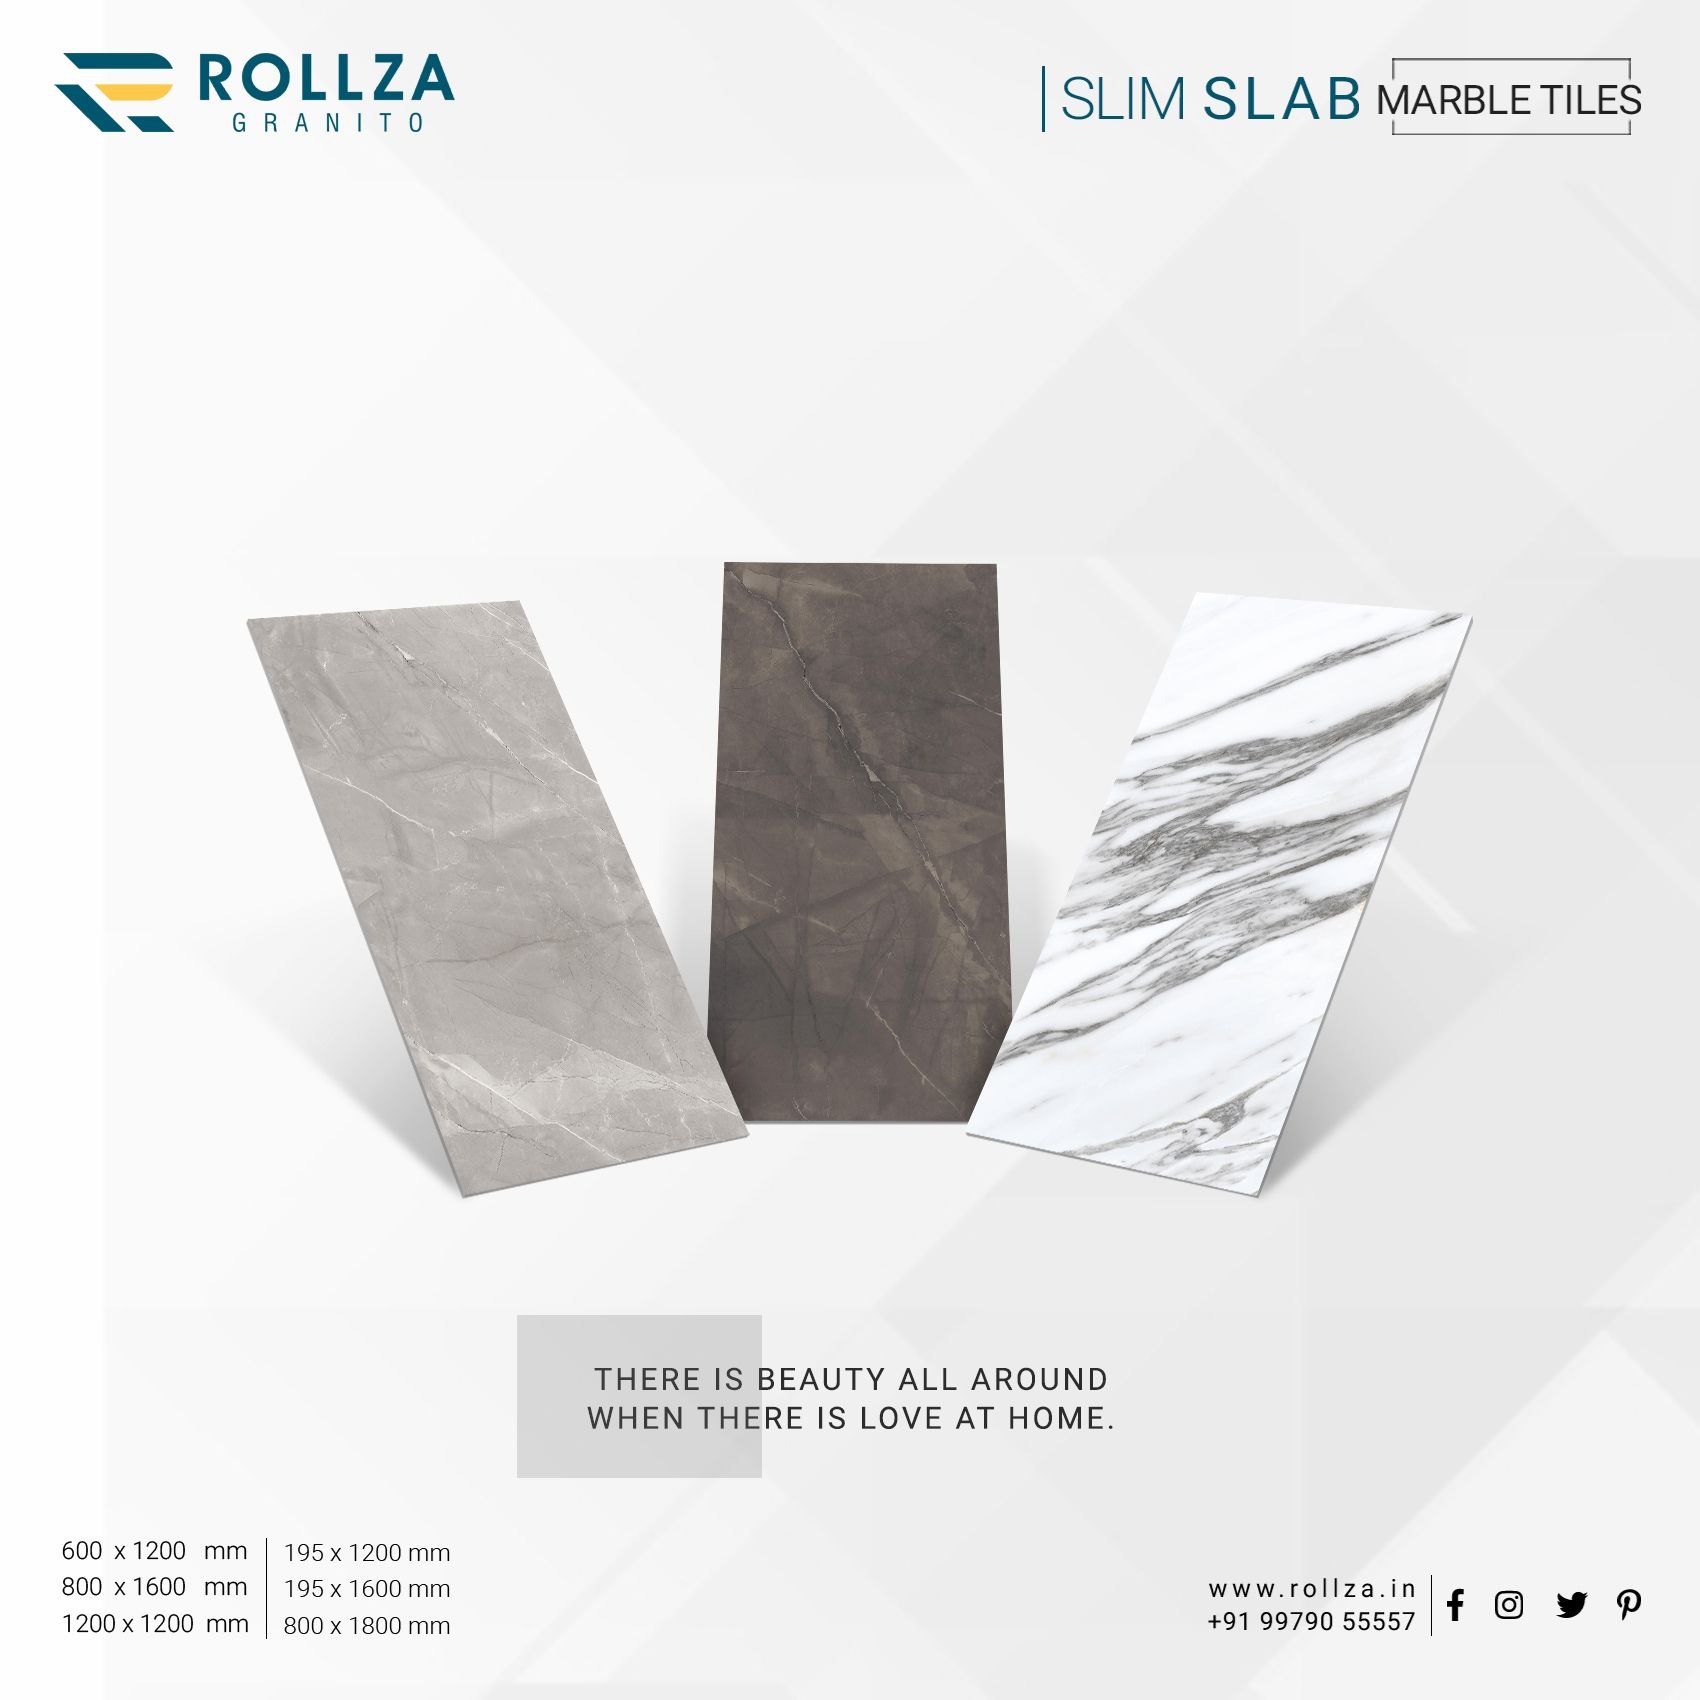 Pin By Rollza Granito On Tiles In 2020 Artistic Tile Tile Manufacturers Marble Tiles